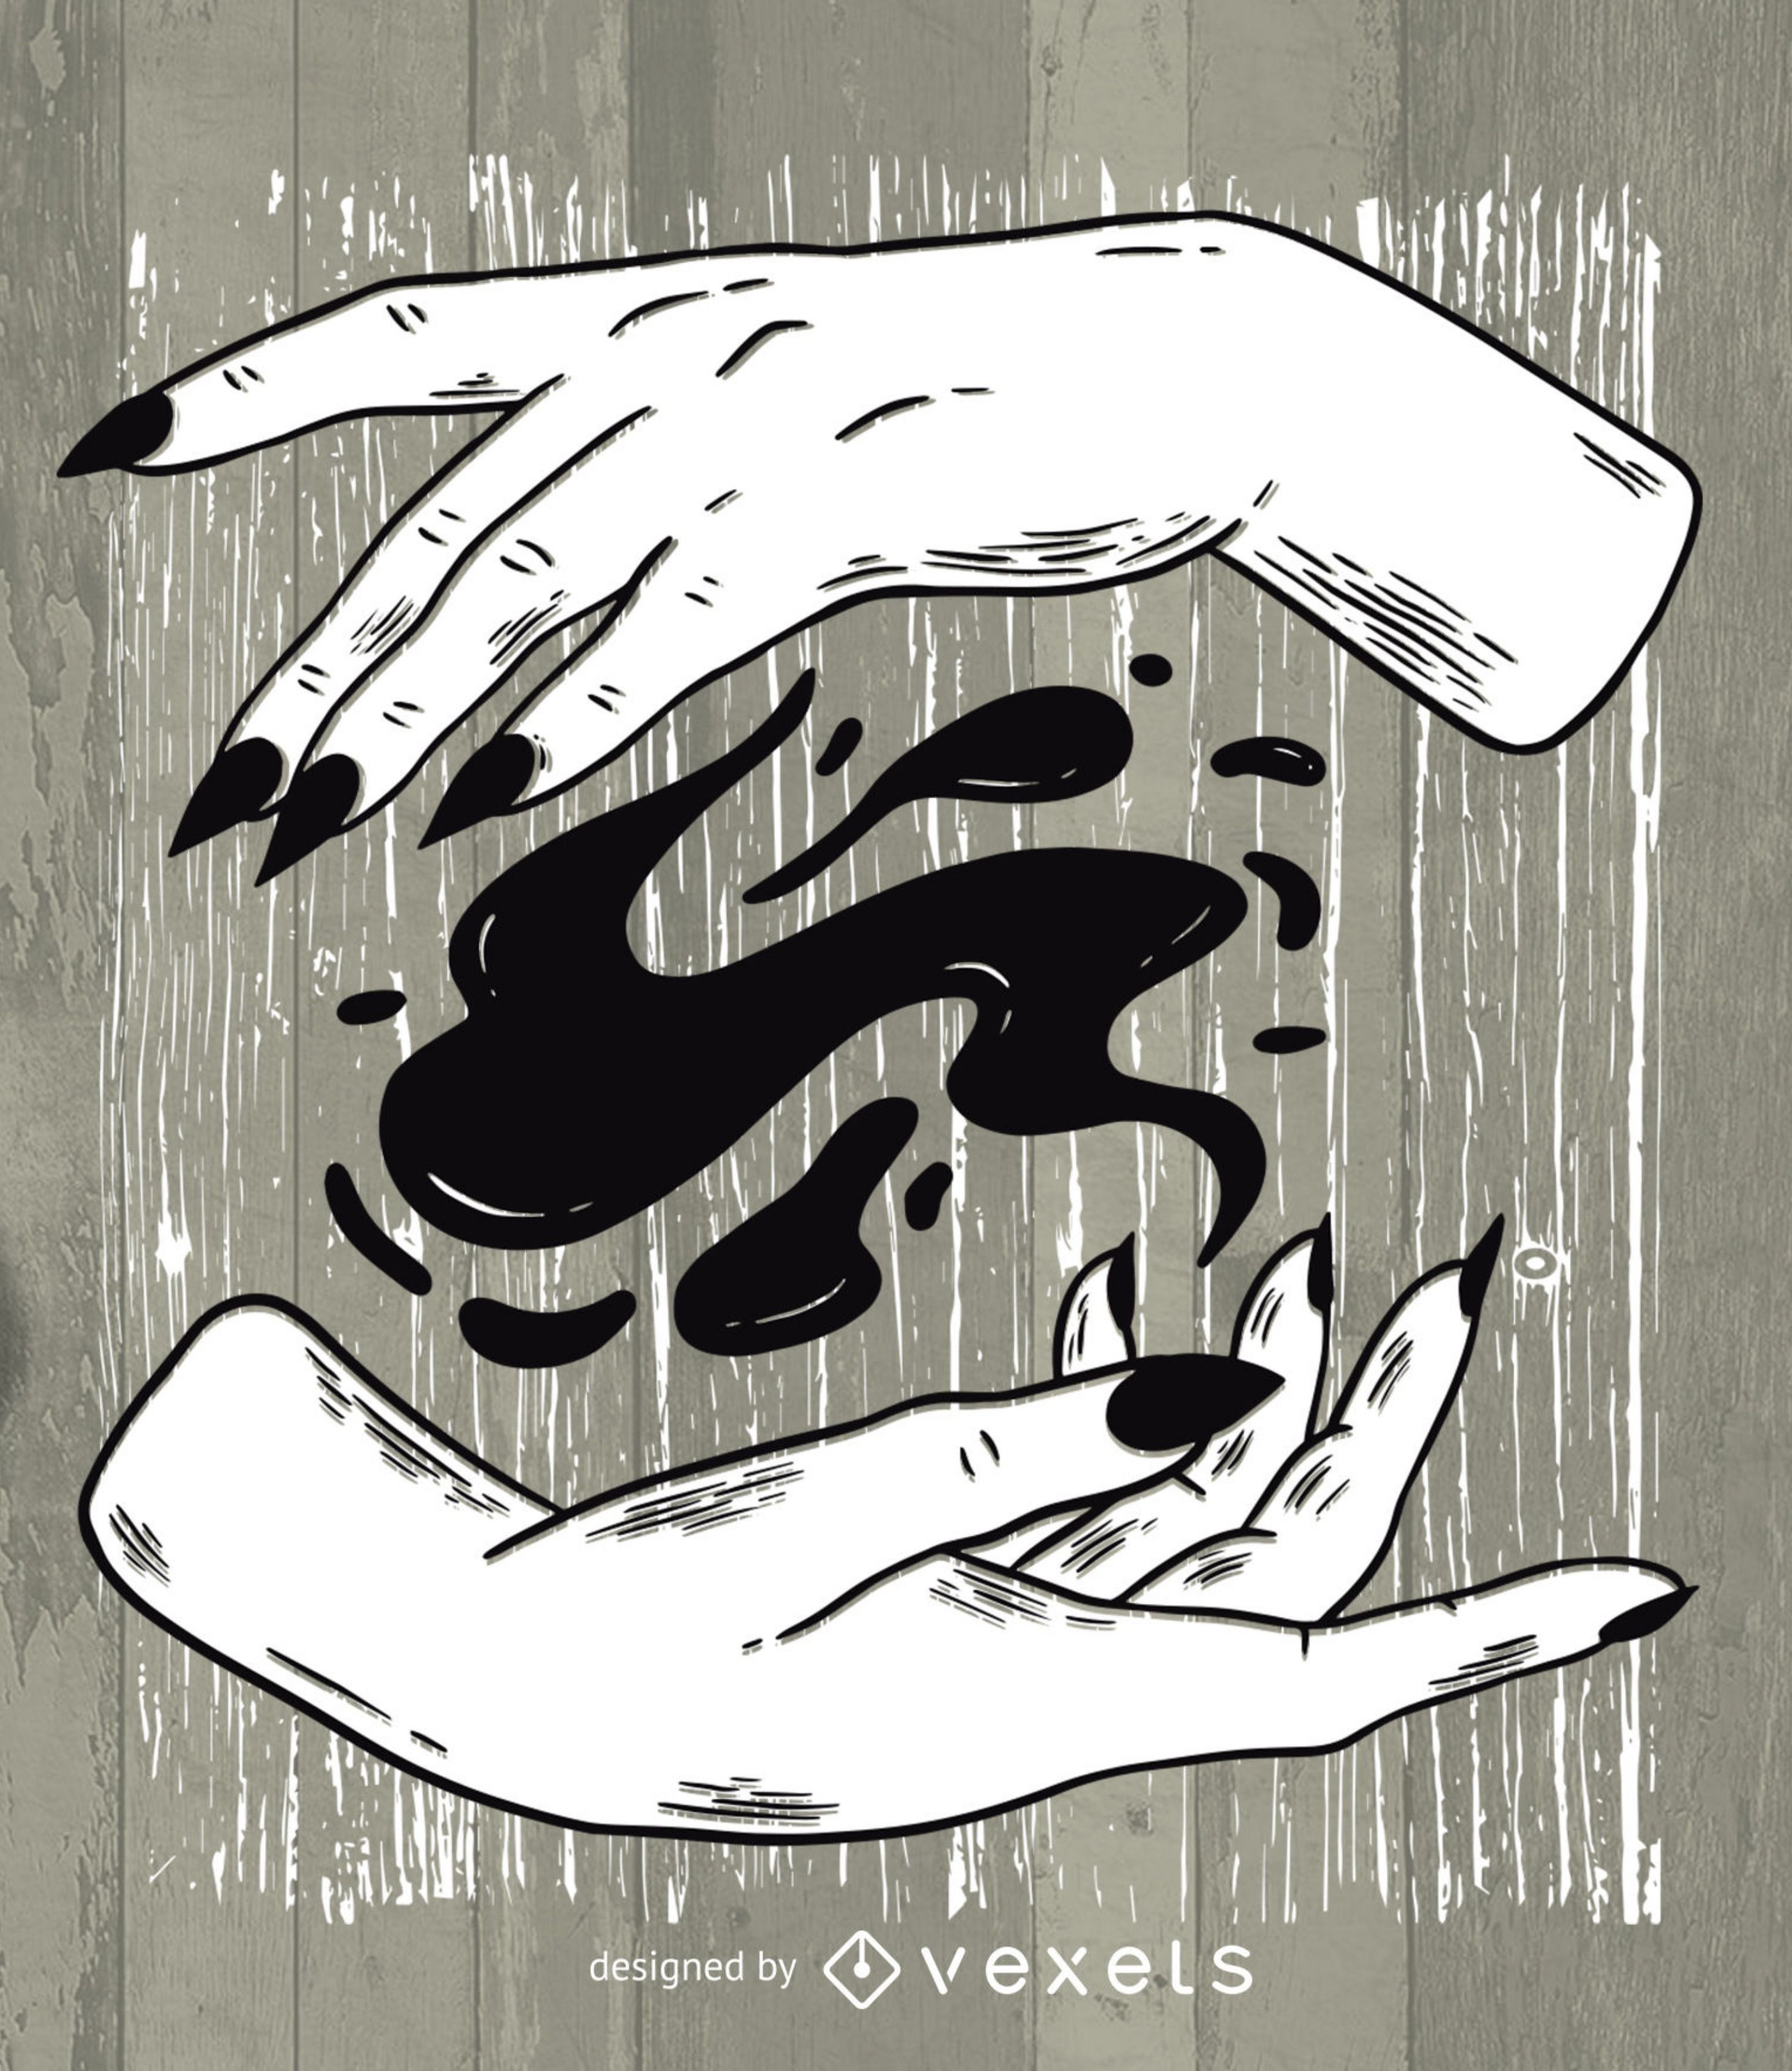 Check out these witchy hands casting a dark magic spell